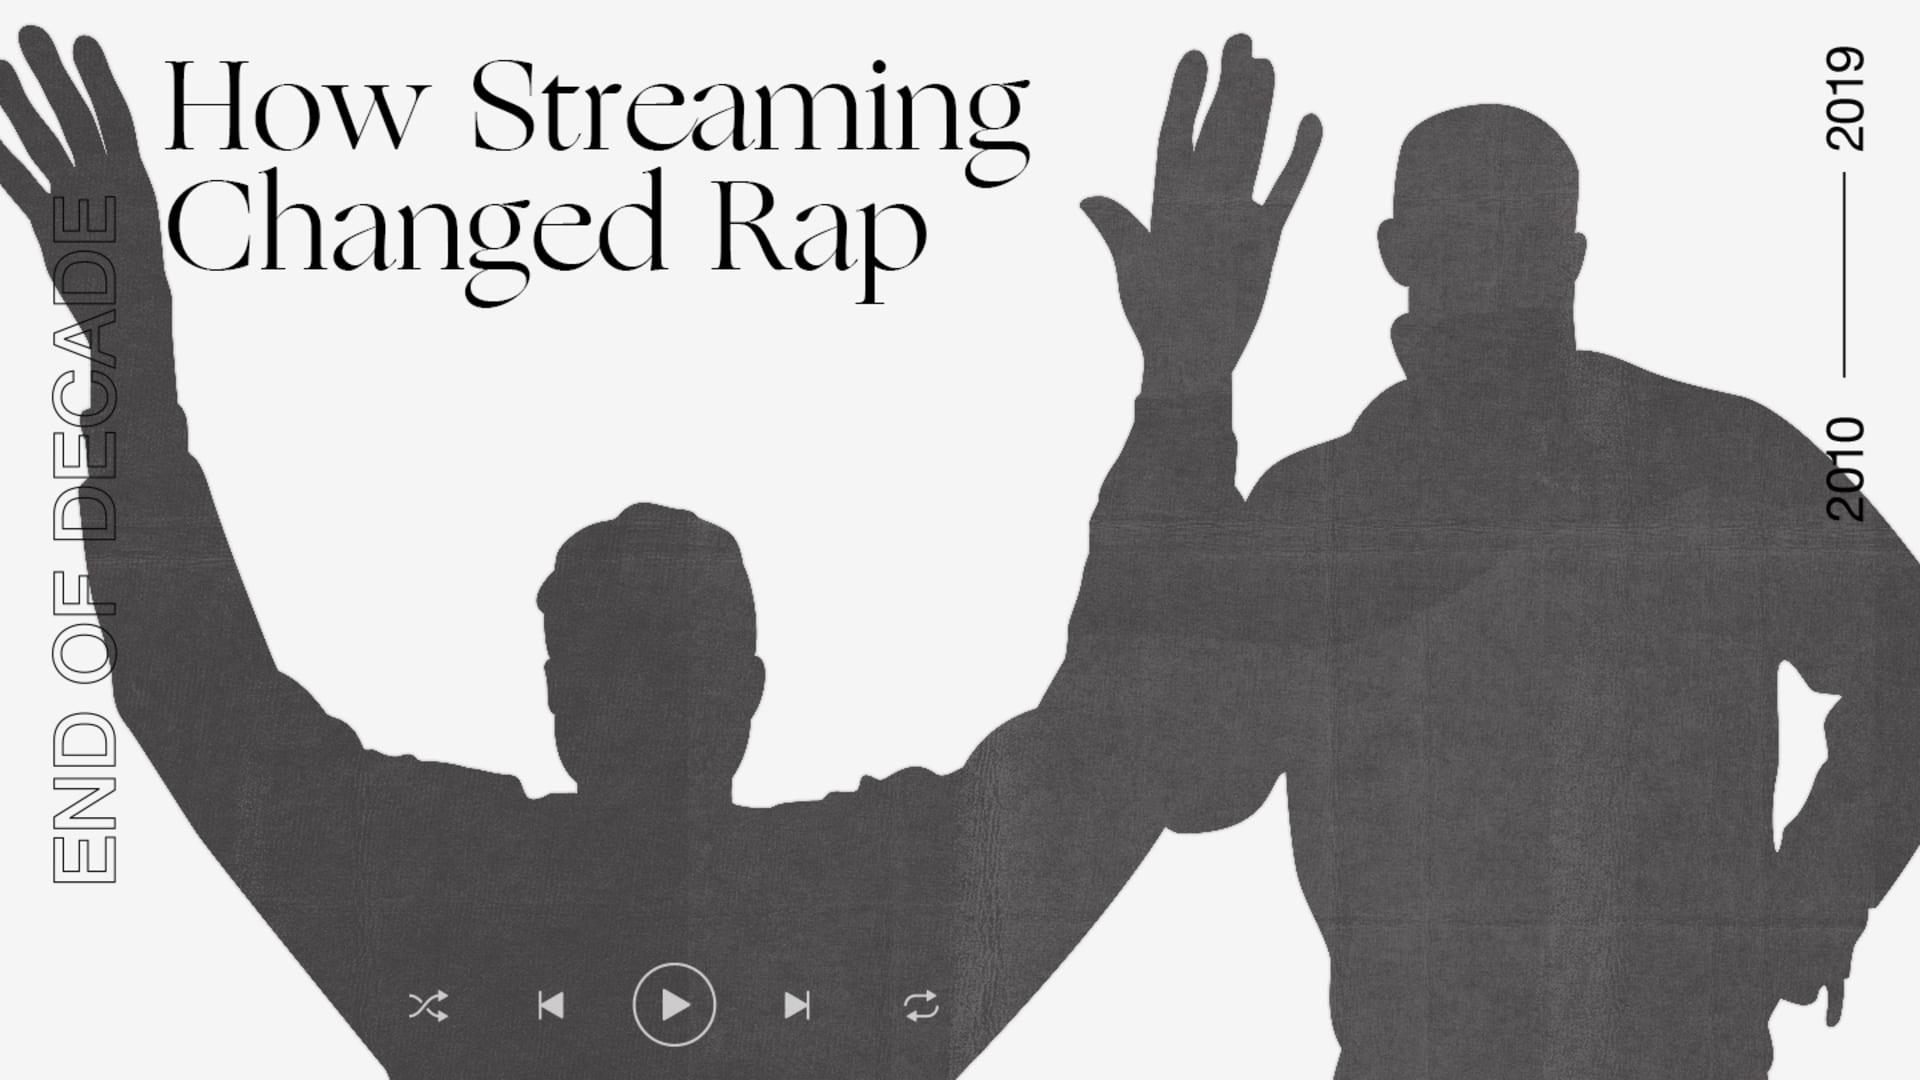 How Streaming Changed Rap in the 2010s